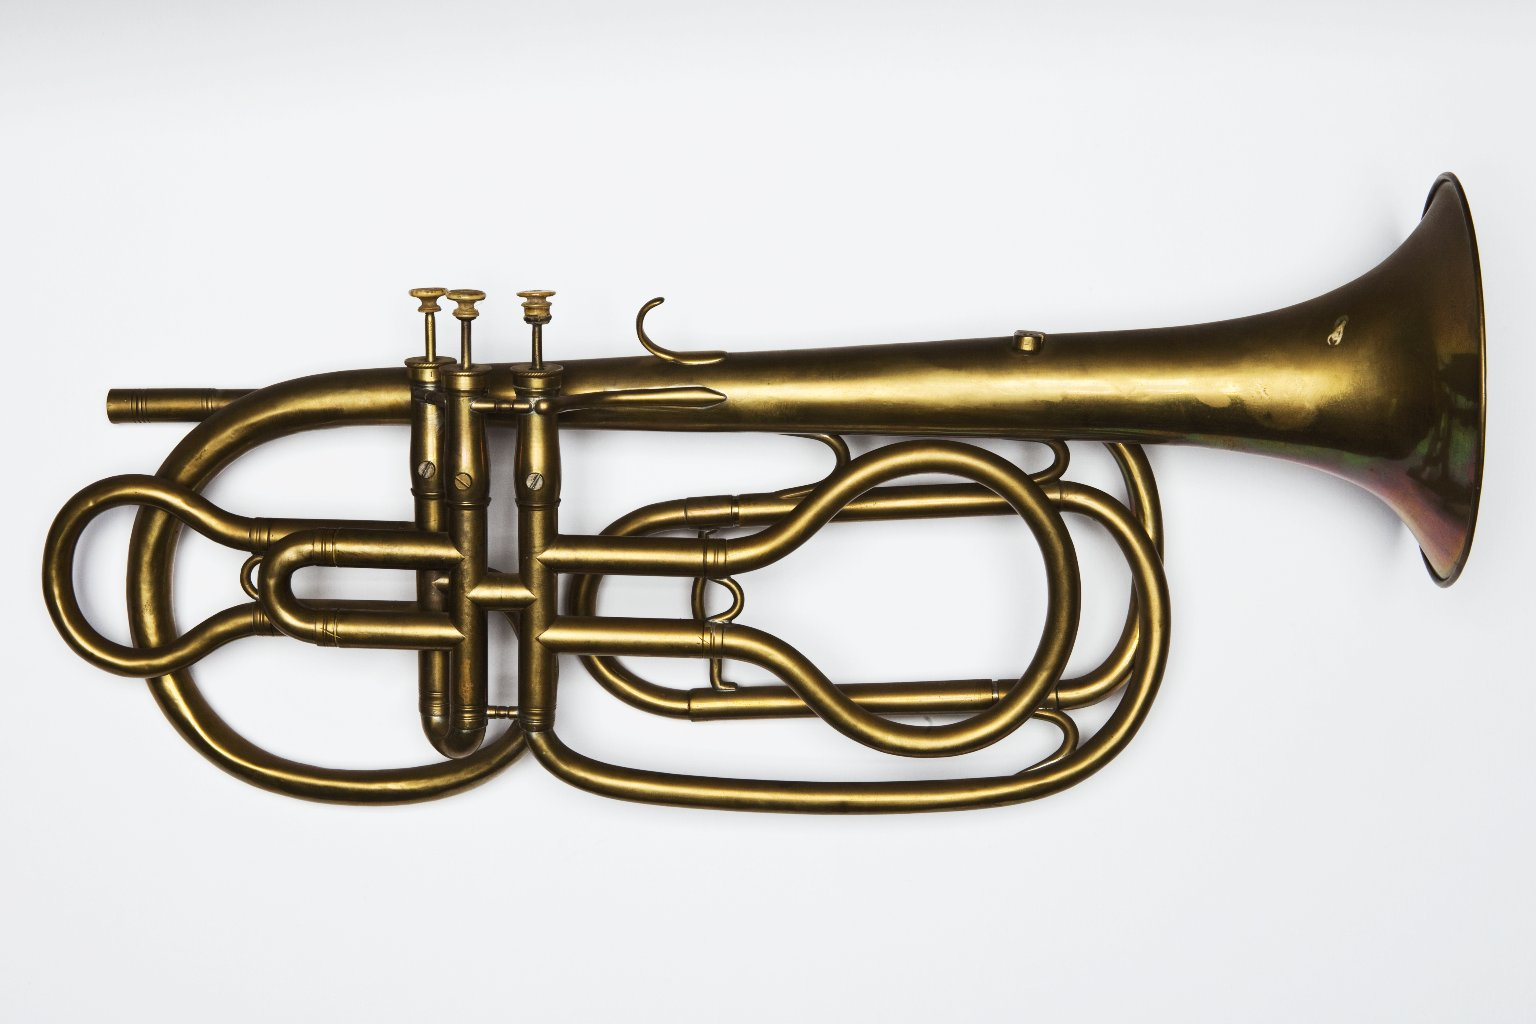 Bass valve trumpet. Nominal pitch: 8-ft C (Courtois neveu aîné) : TOP